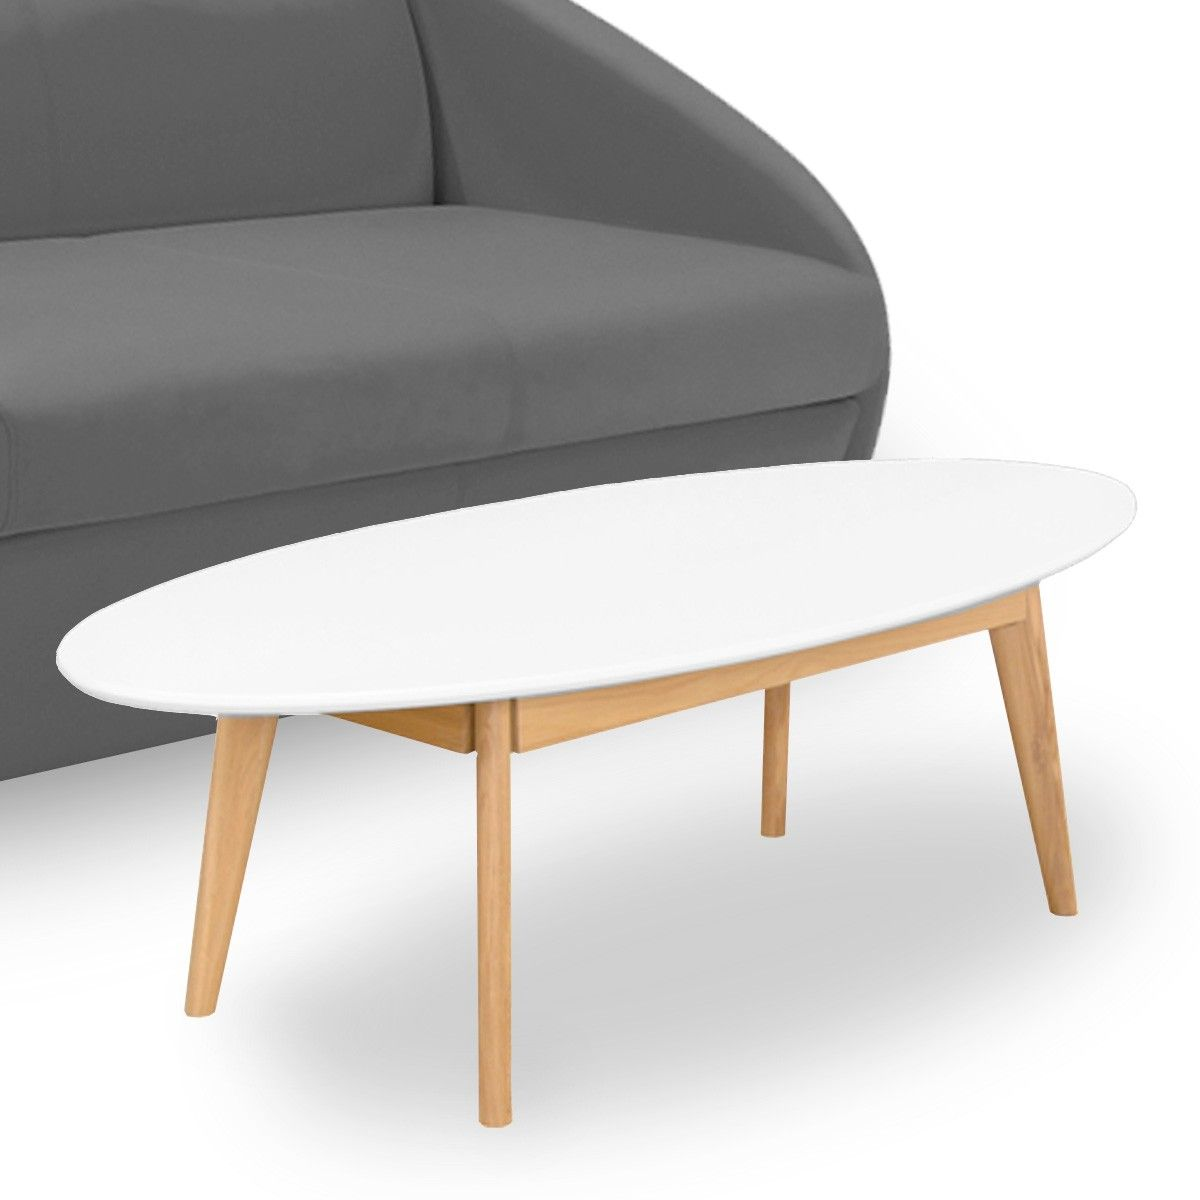 Table basse ovale design scandinave Skoll, Drawer,  149€